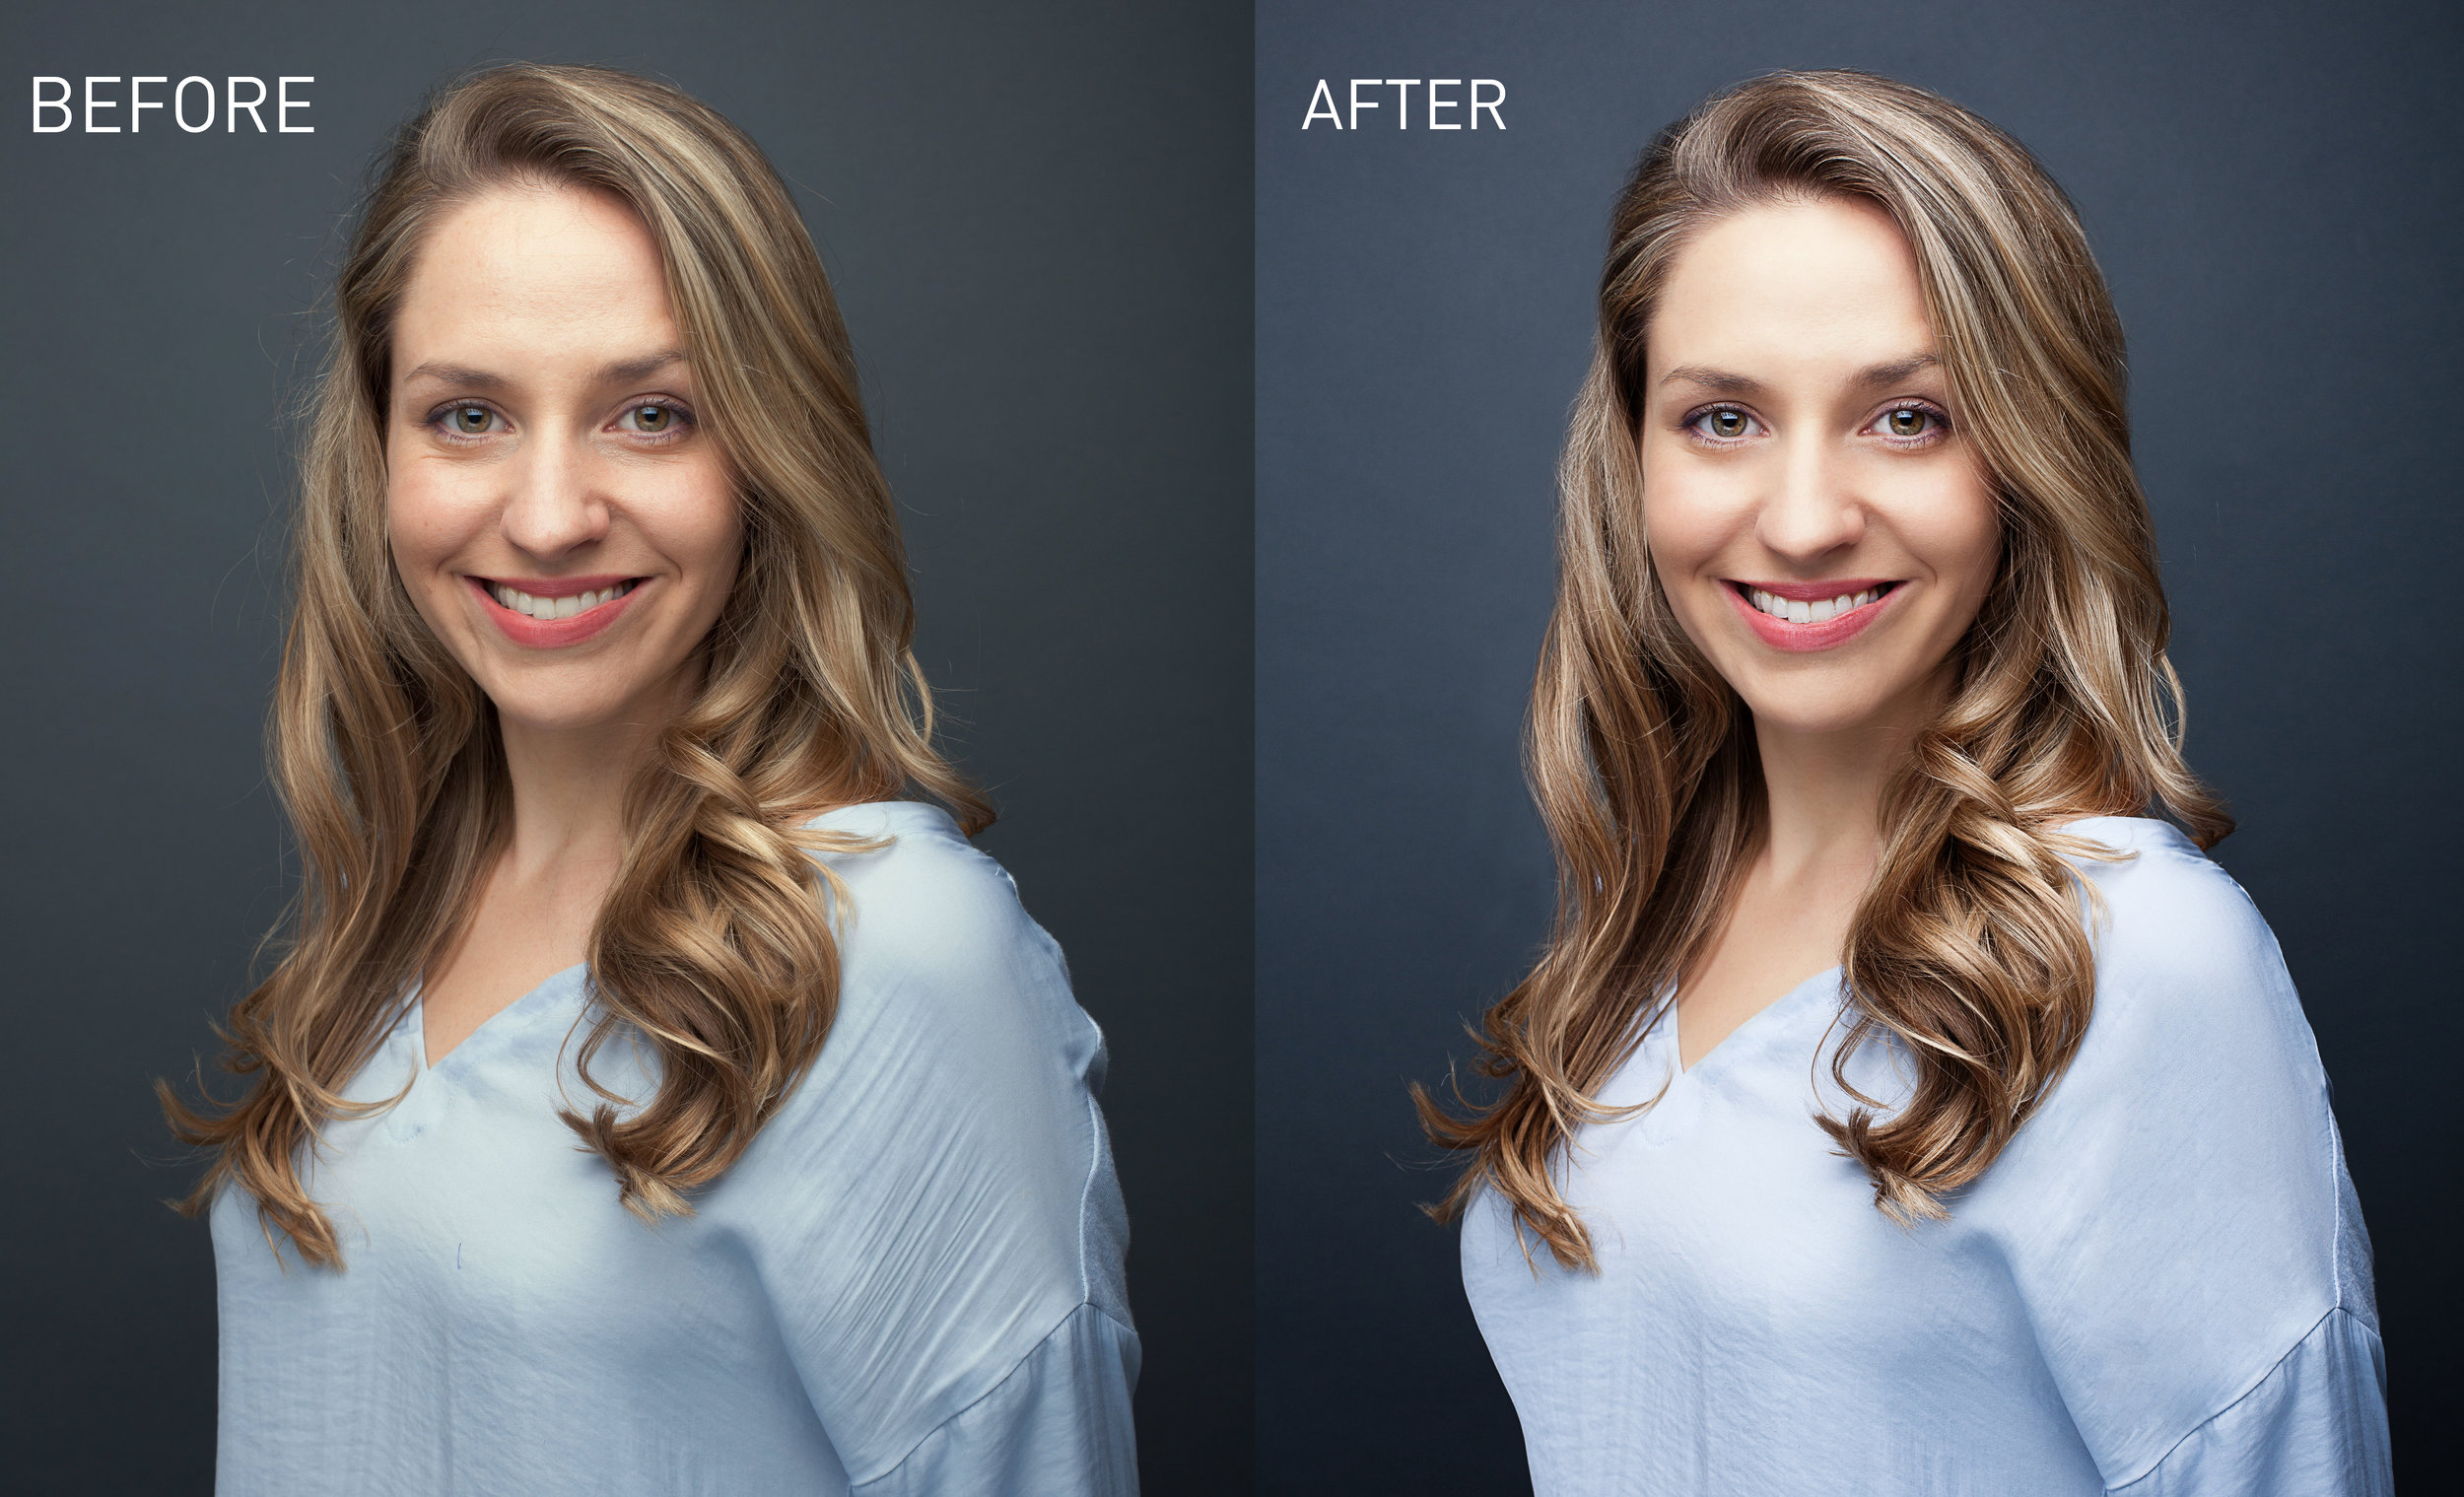 Headshot-editing-retouching-workflow-before-after-Valentina-Sadiul